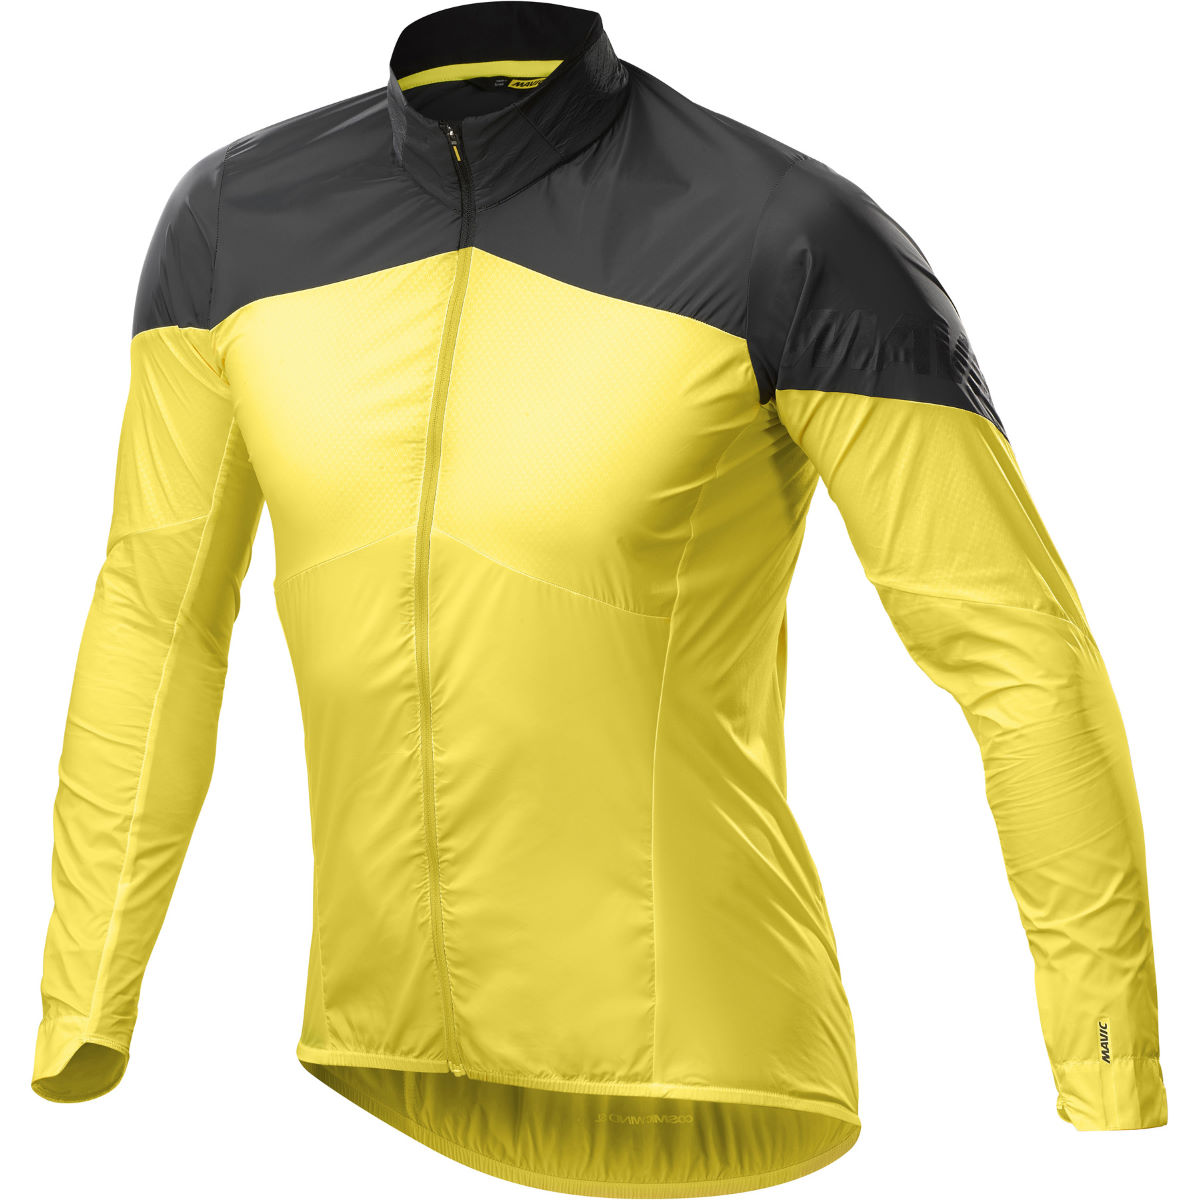 Veste Mavic Cosmic Wind SL - M Yellow Mavic/Black Vestes